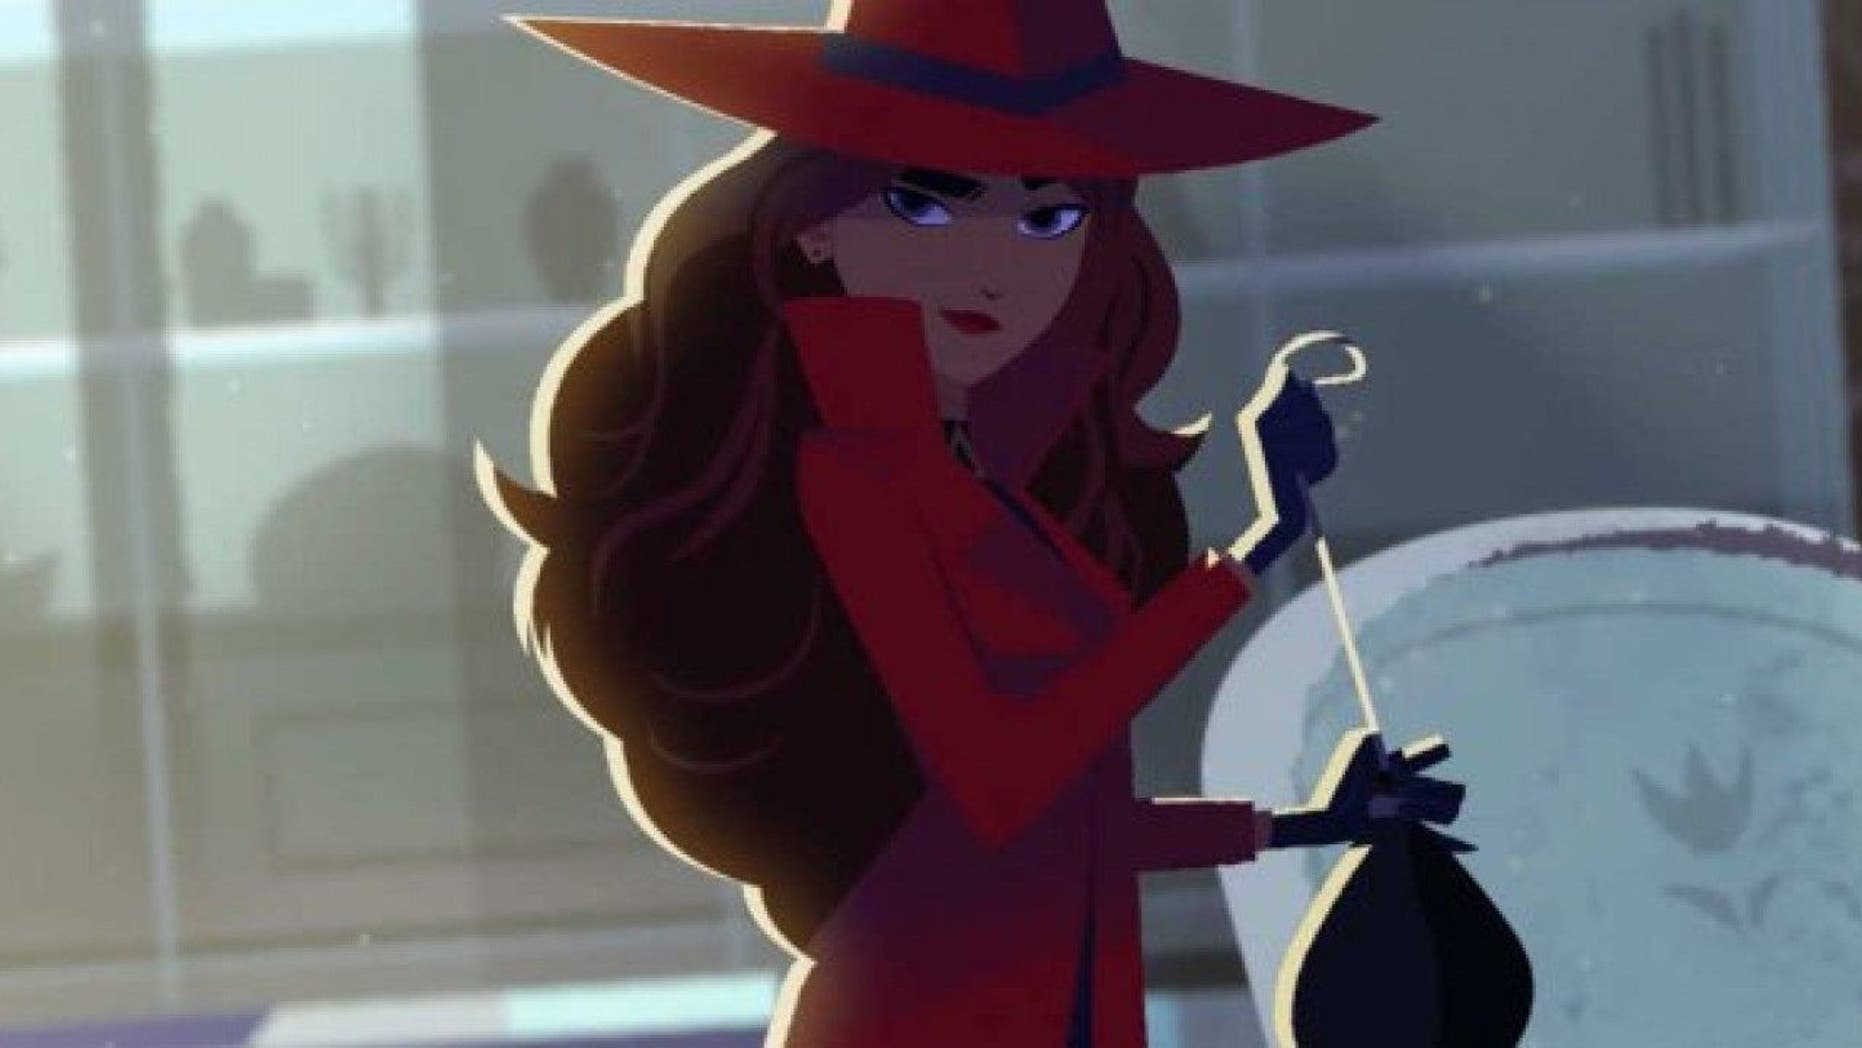 Carmen Sandiego Trailer Brings the Iconic Woman in Red to Netflix